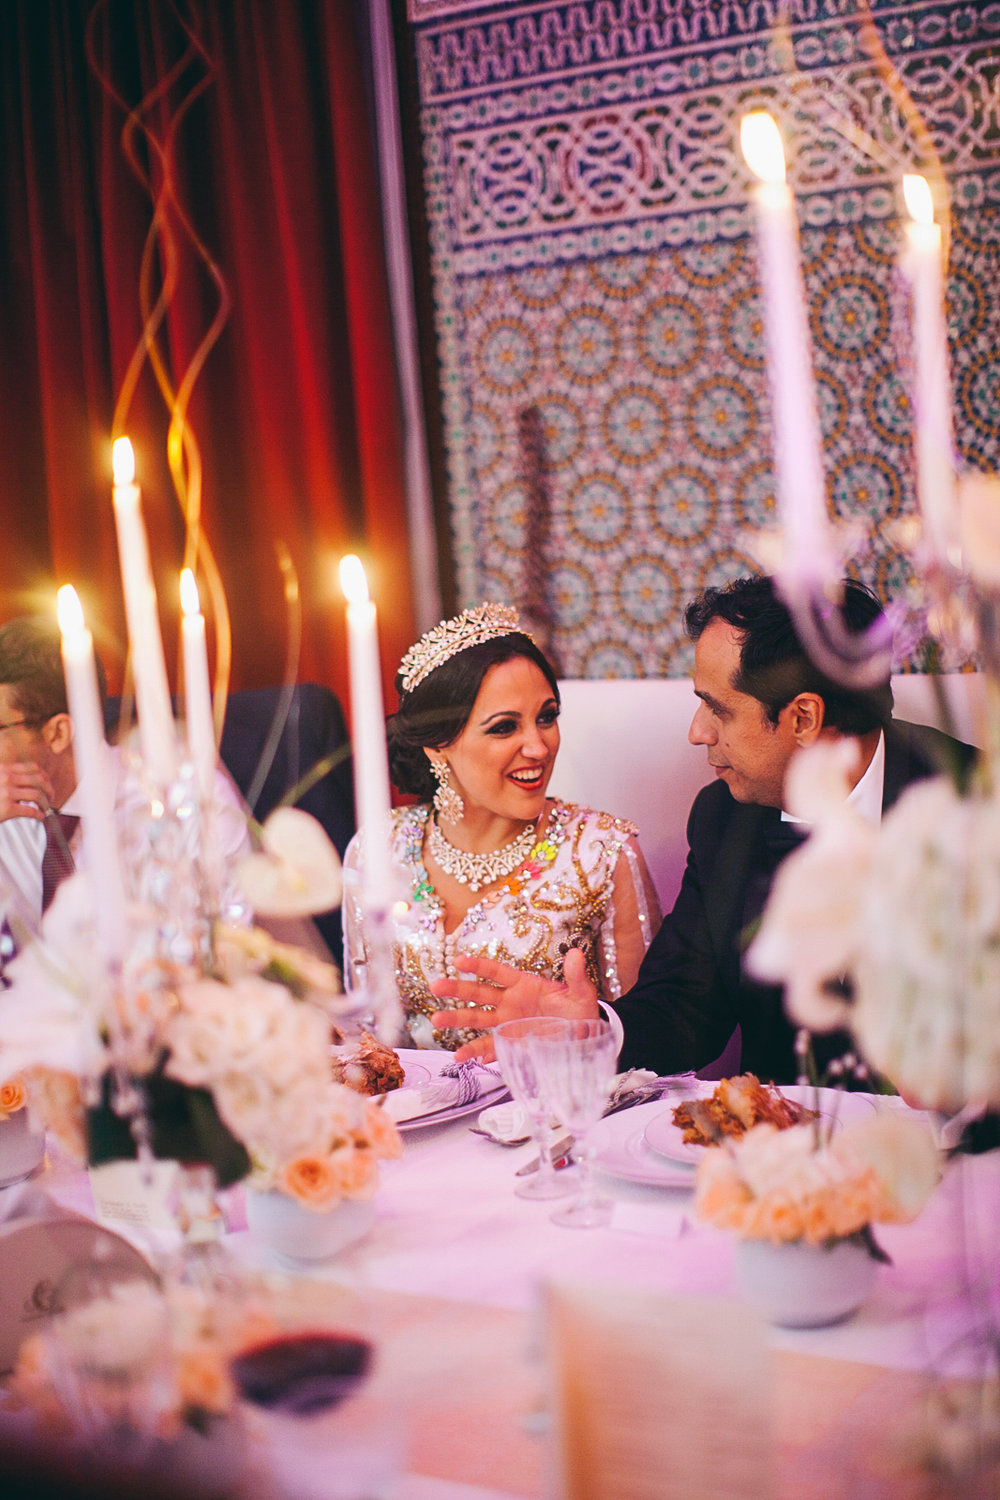 traditional_moroccan_wedding_photographry_casablanca_morocco_houda_vivek_ebony_siovhan_bokeh_photography_138.jpg